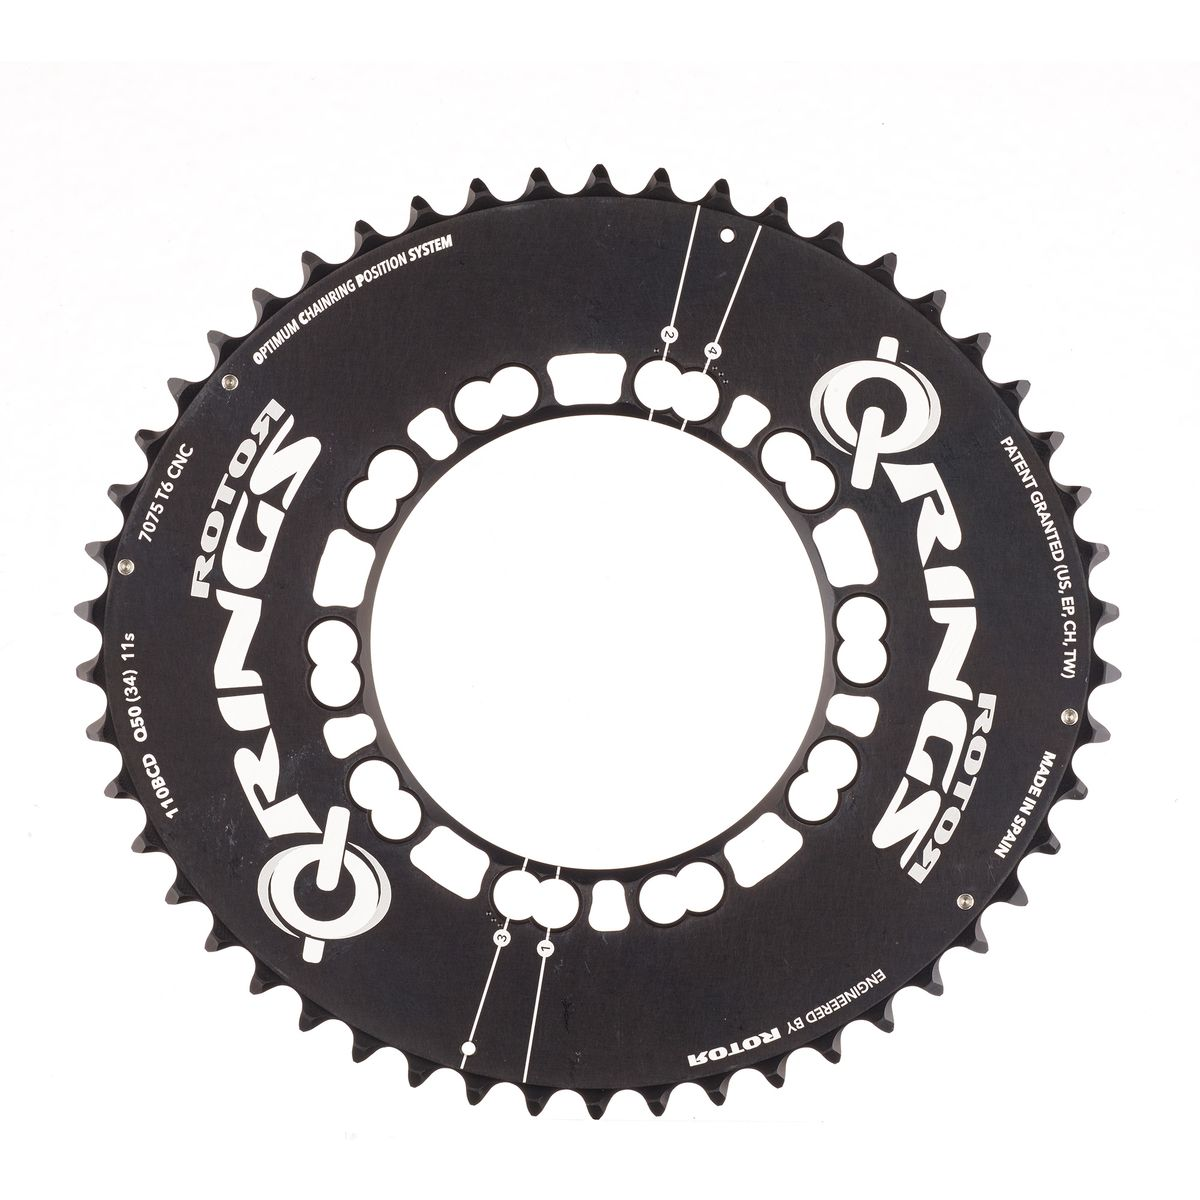 Q-Rings Aero 50 tooth chainring 110mm bolt circle